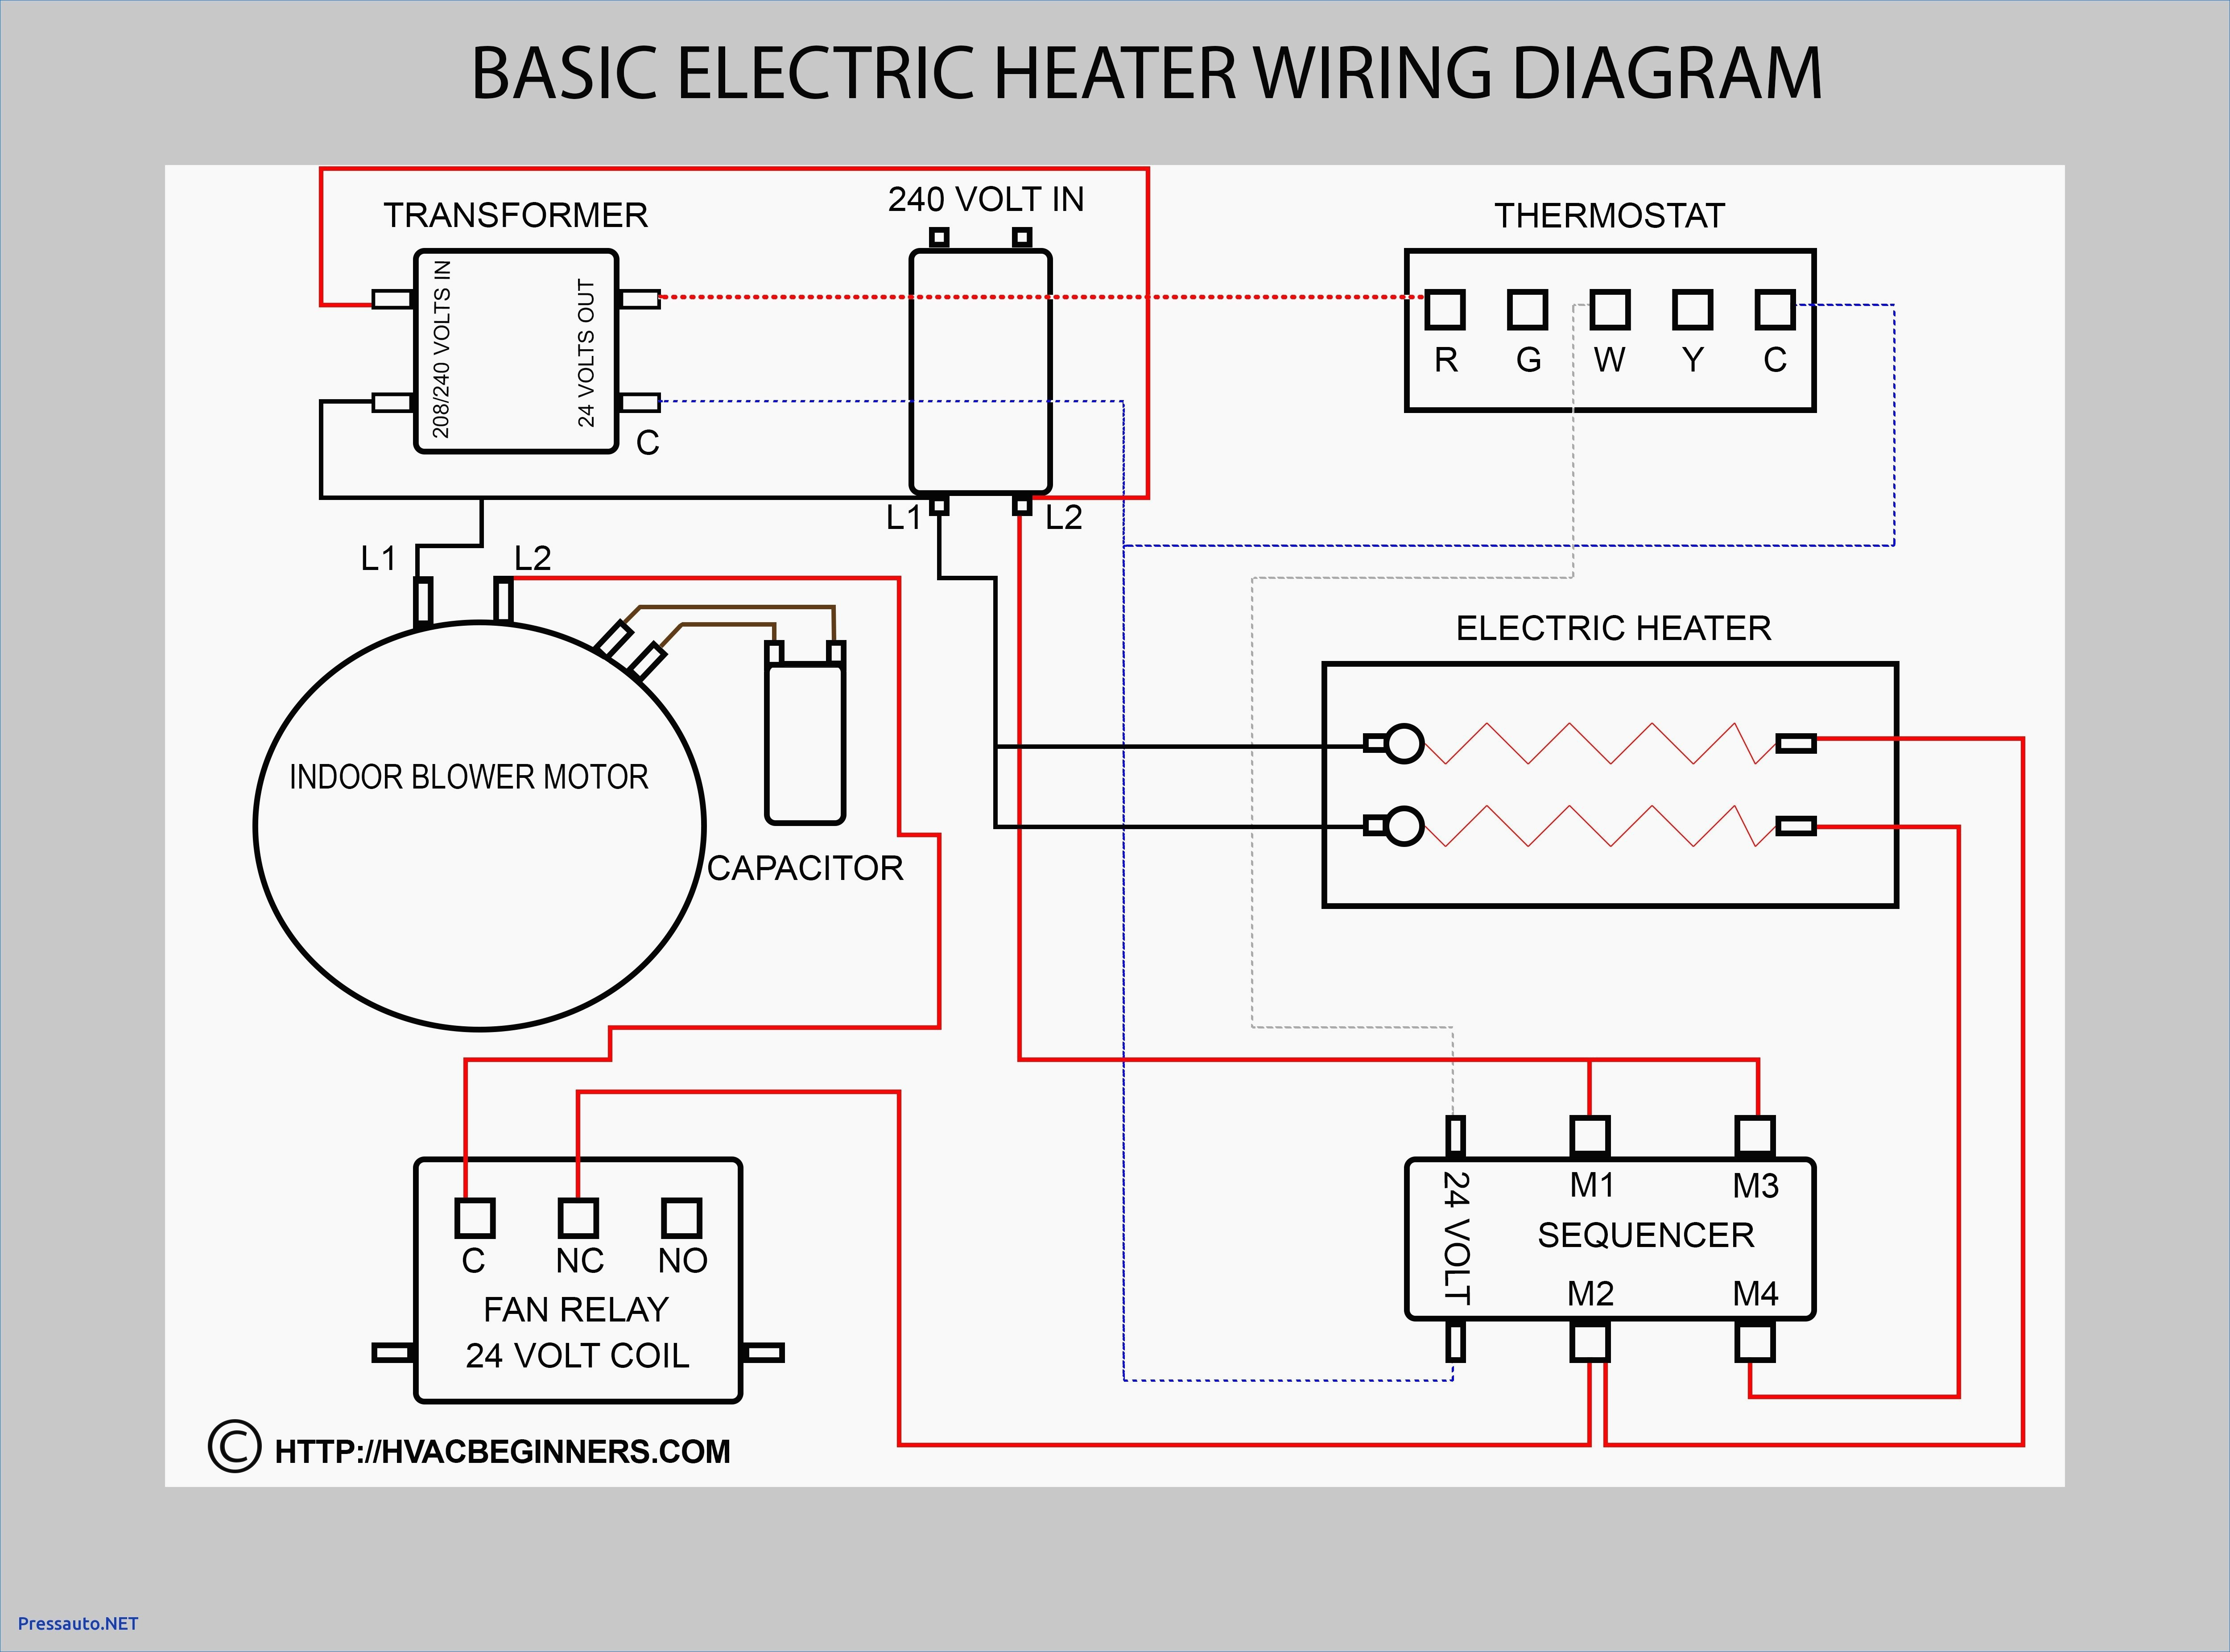 Wiring Diagram Tape Xenia : Heat tape wiring diagram download collection